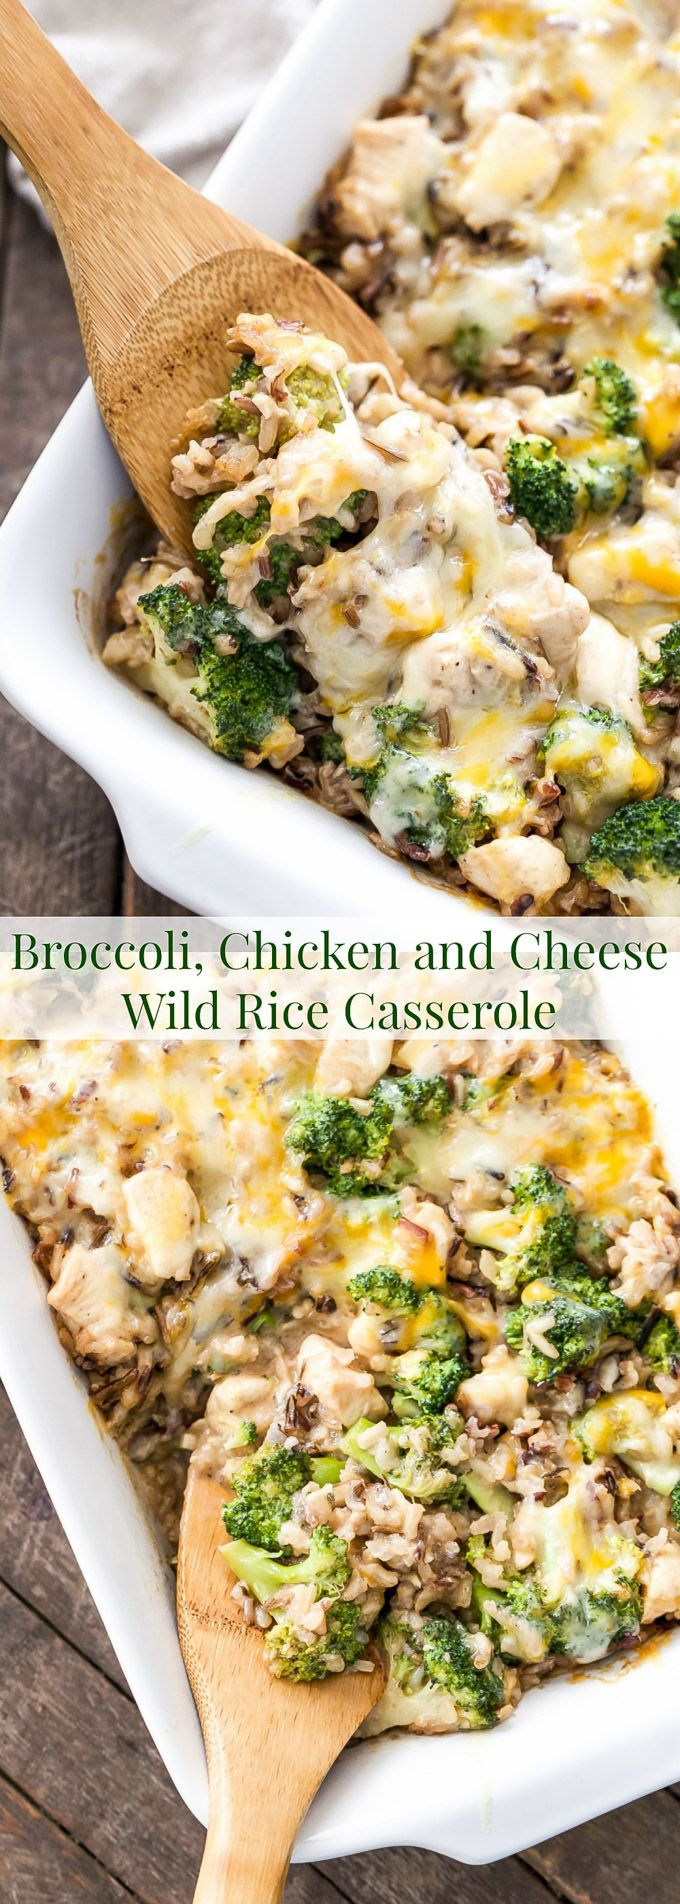 This Broccoli, Chicken and Cheese Wild Rice Casserole is a healthy and delicious dinner that can be made ahead of time, perfect for busy nights!